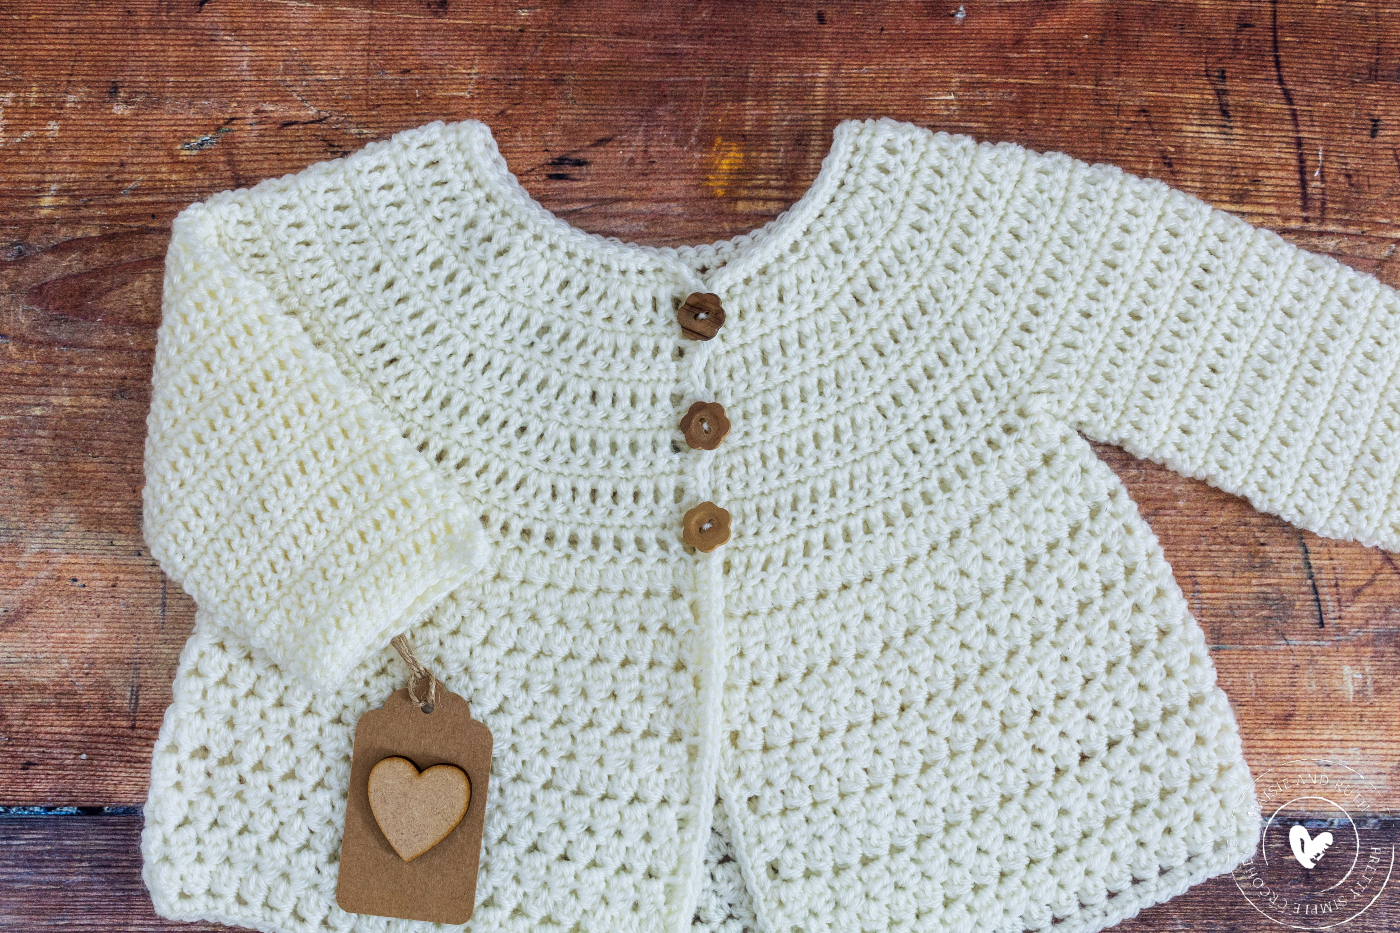 Crochet Baby Cardigan Pattern with Gift Tag